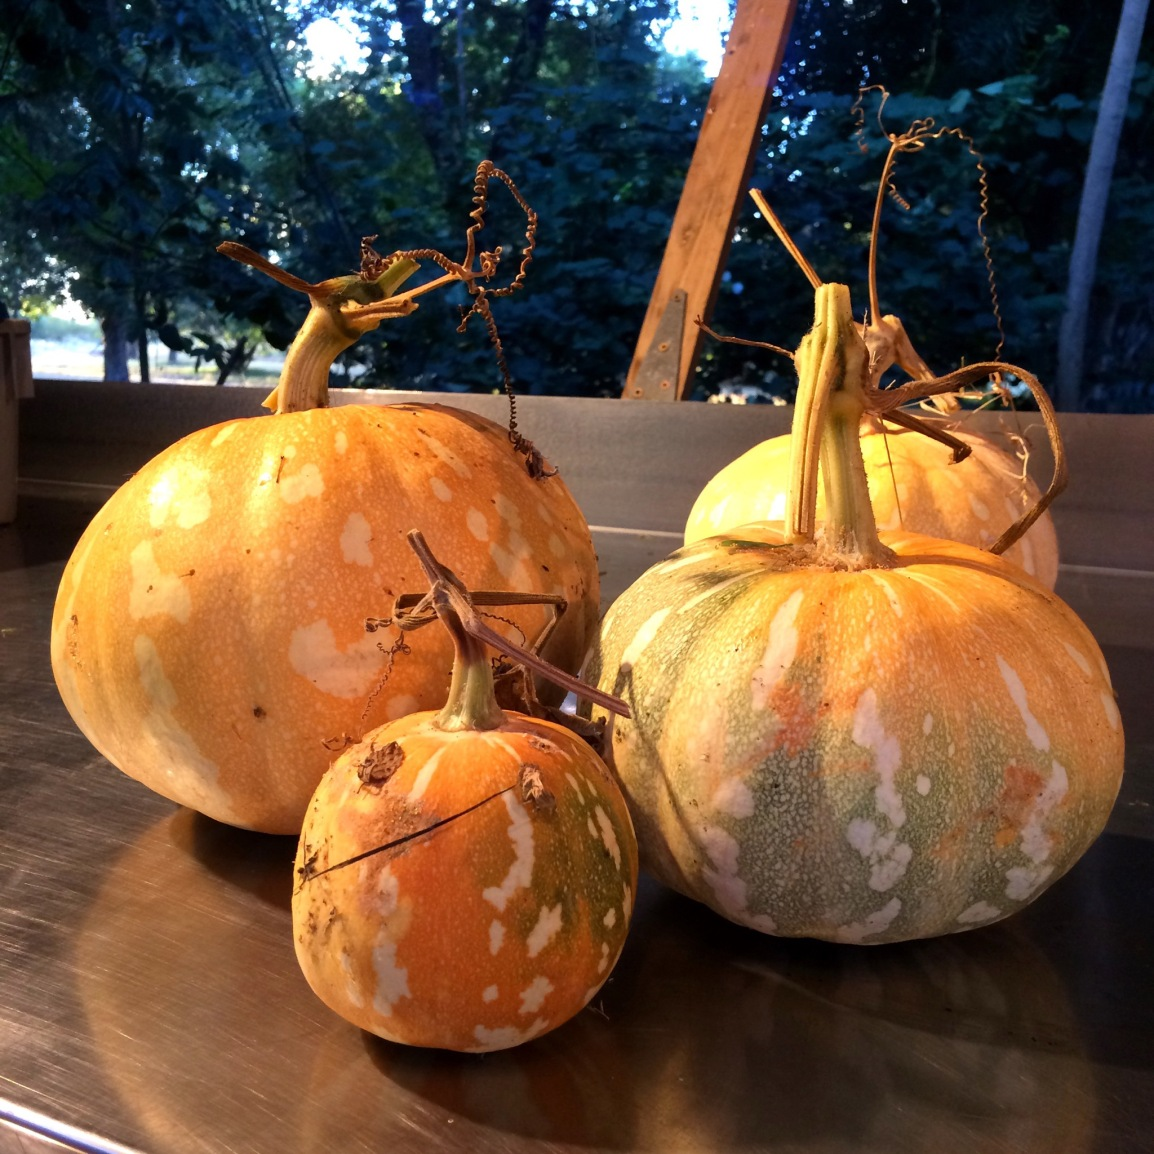 Four pale orange, white spotted pumpkins sit on a stainless tabletop, with pale blue early morning light on the trees and pastures in the distance.